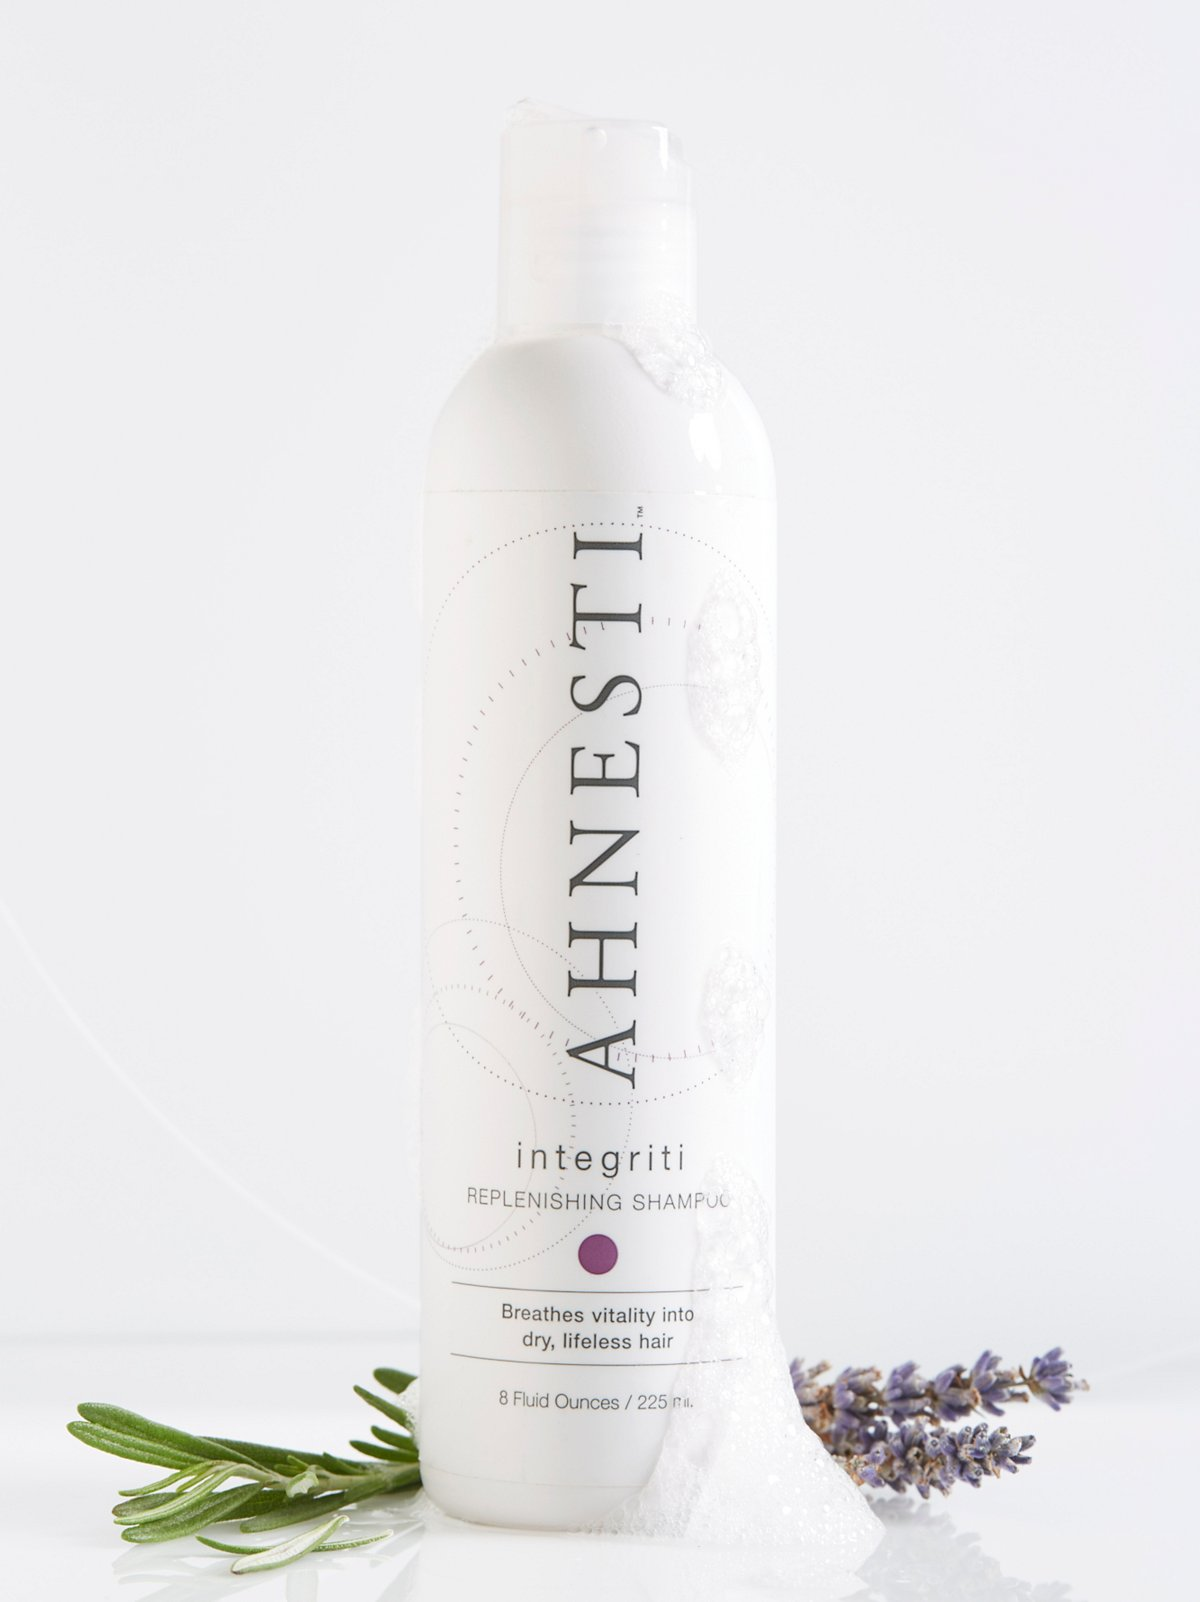 INTEGRITI Replenishing Shampoo